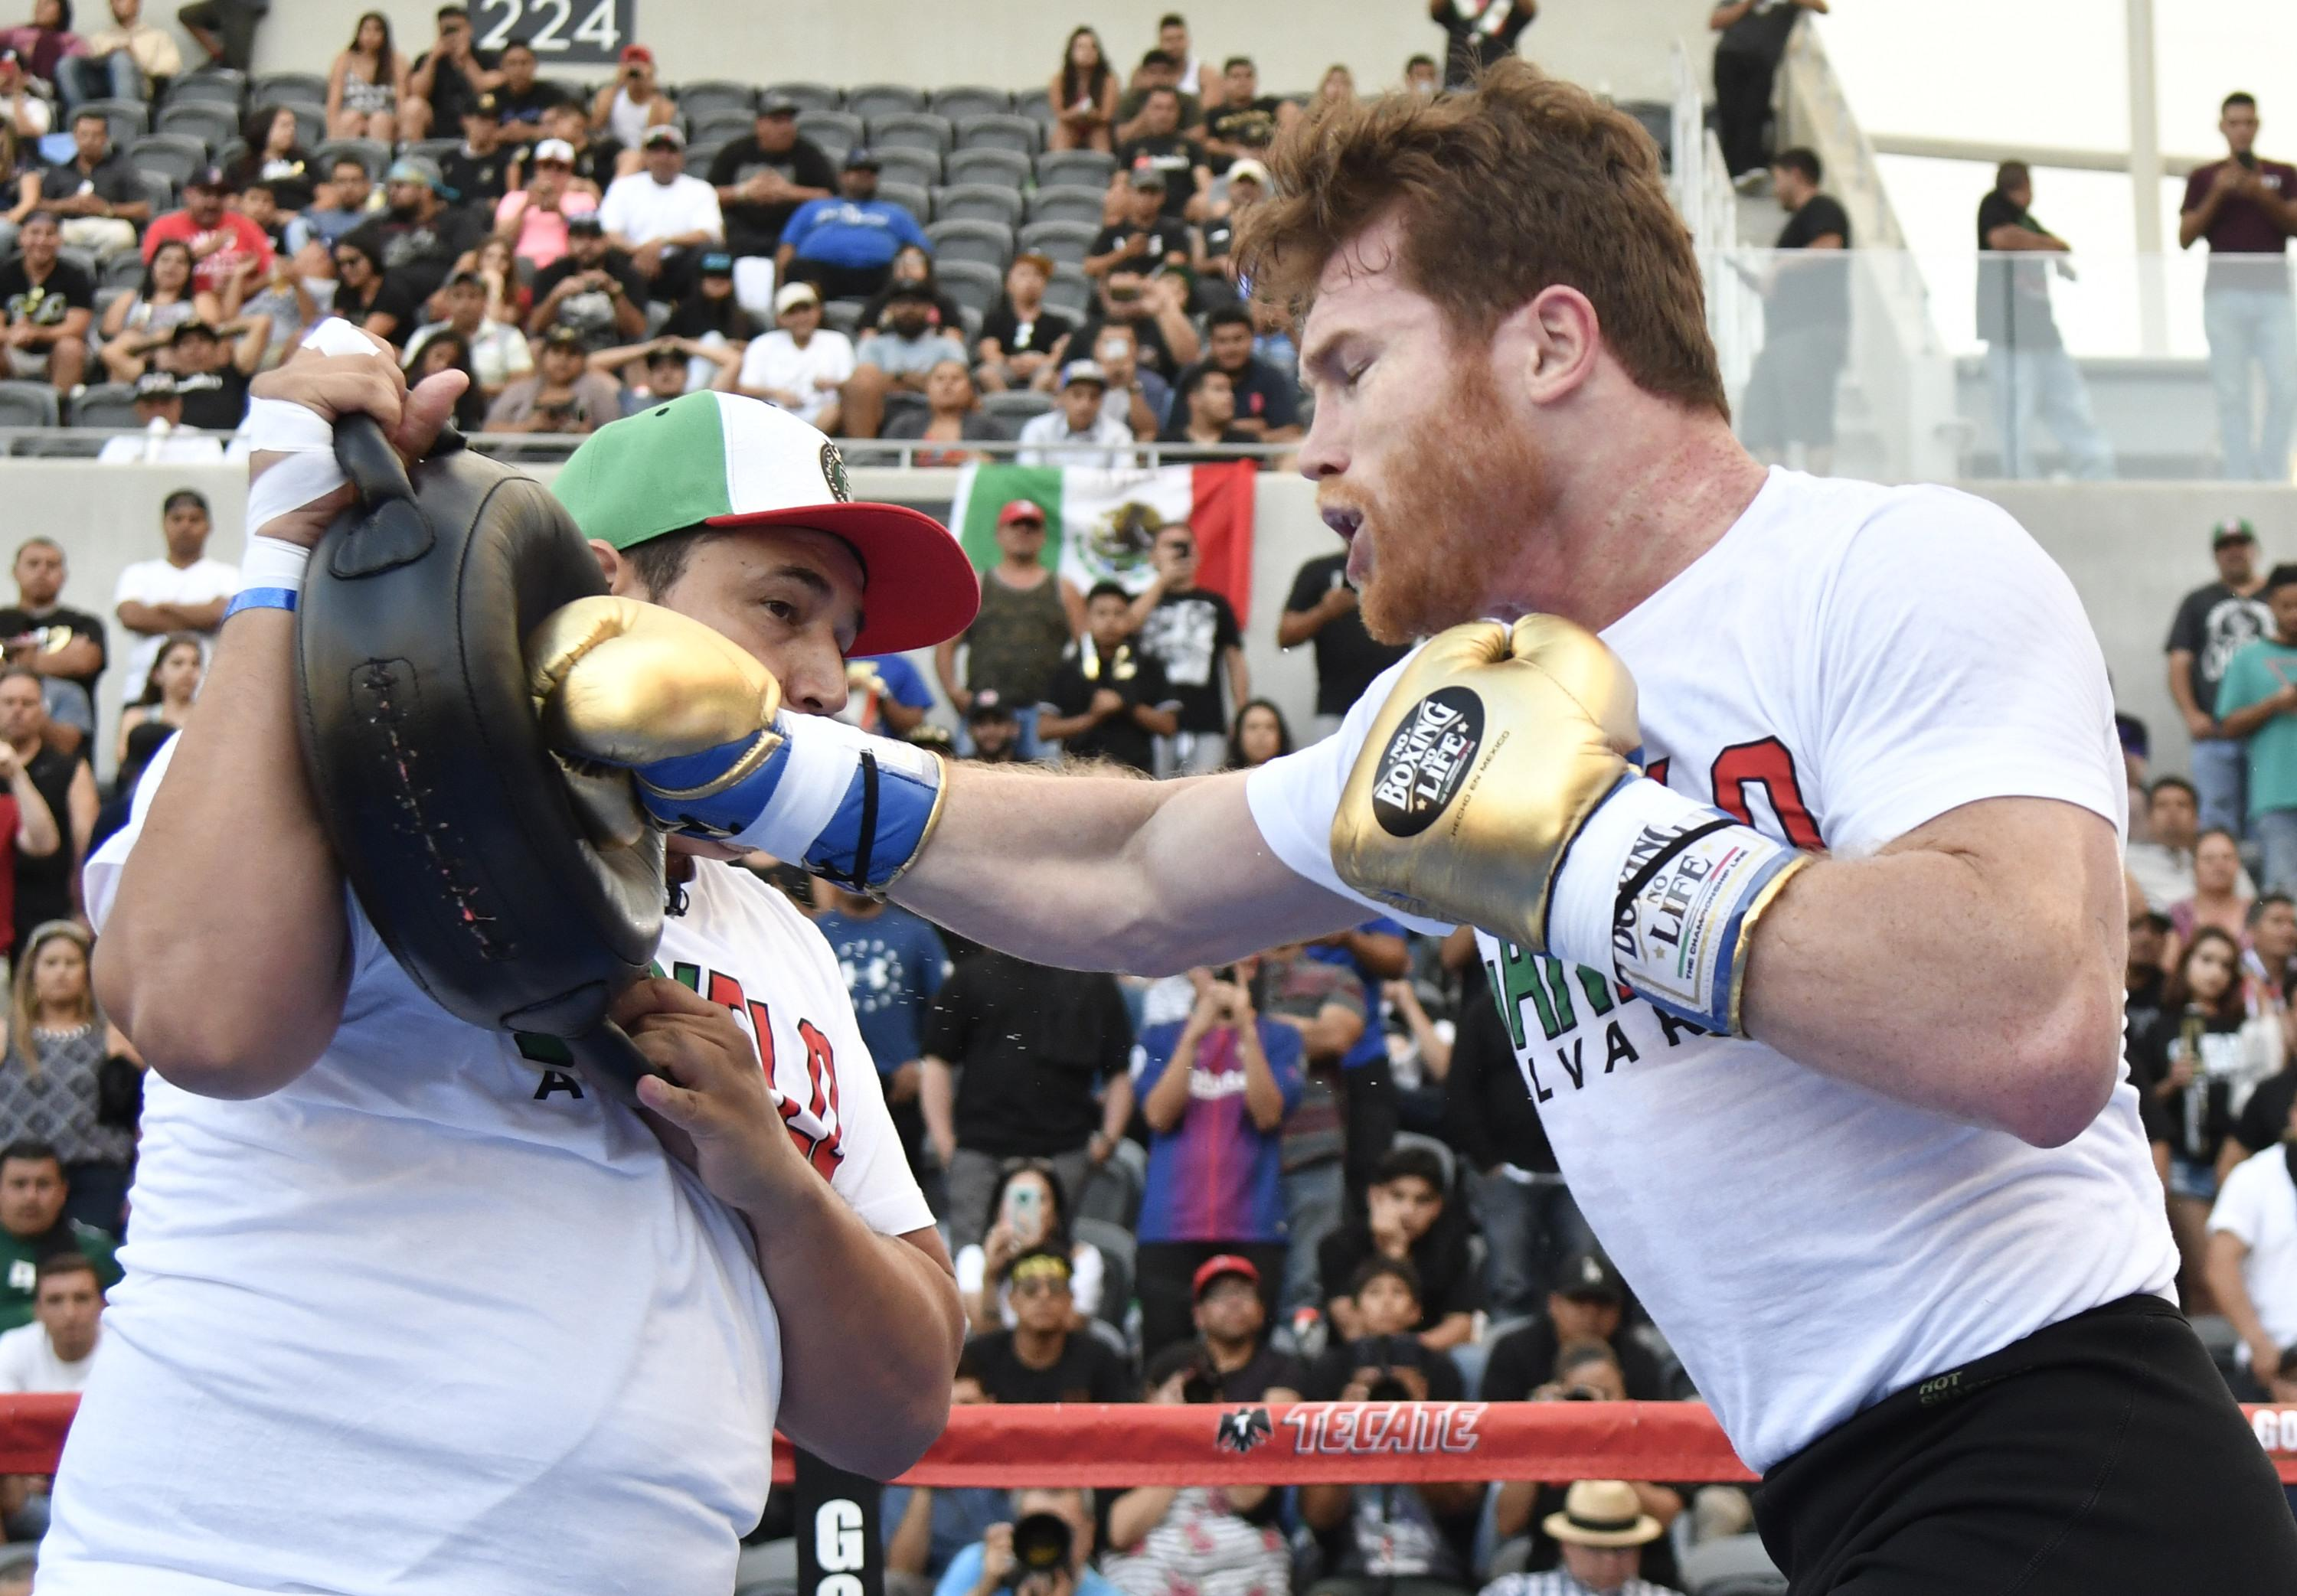 The fighters are set to go toe-to-toe again on September 15